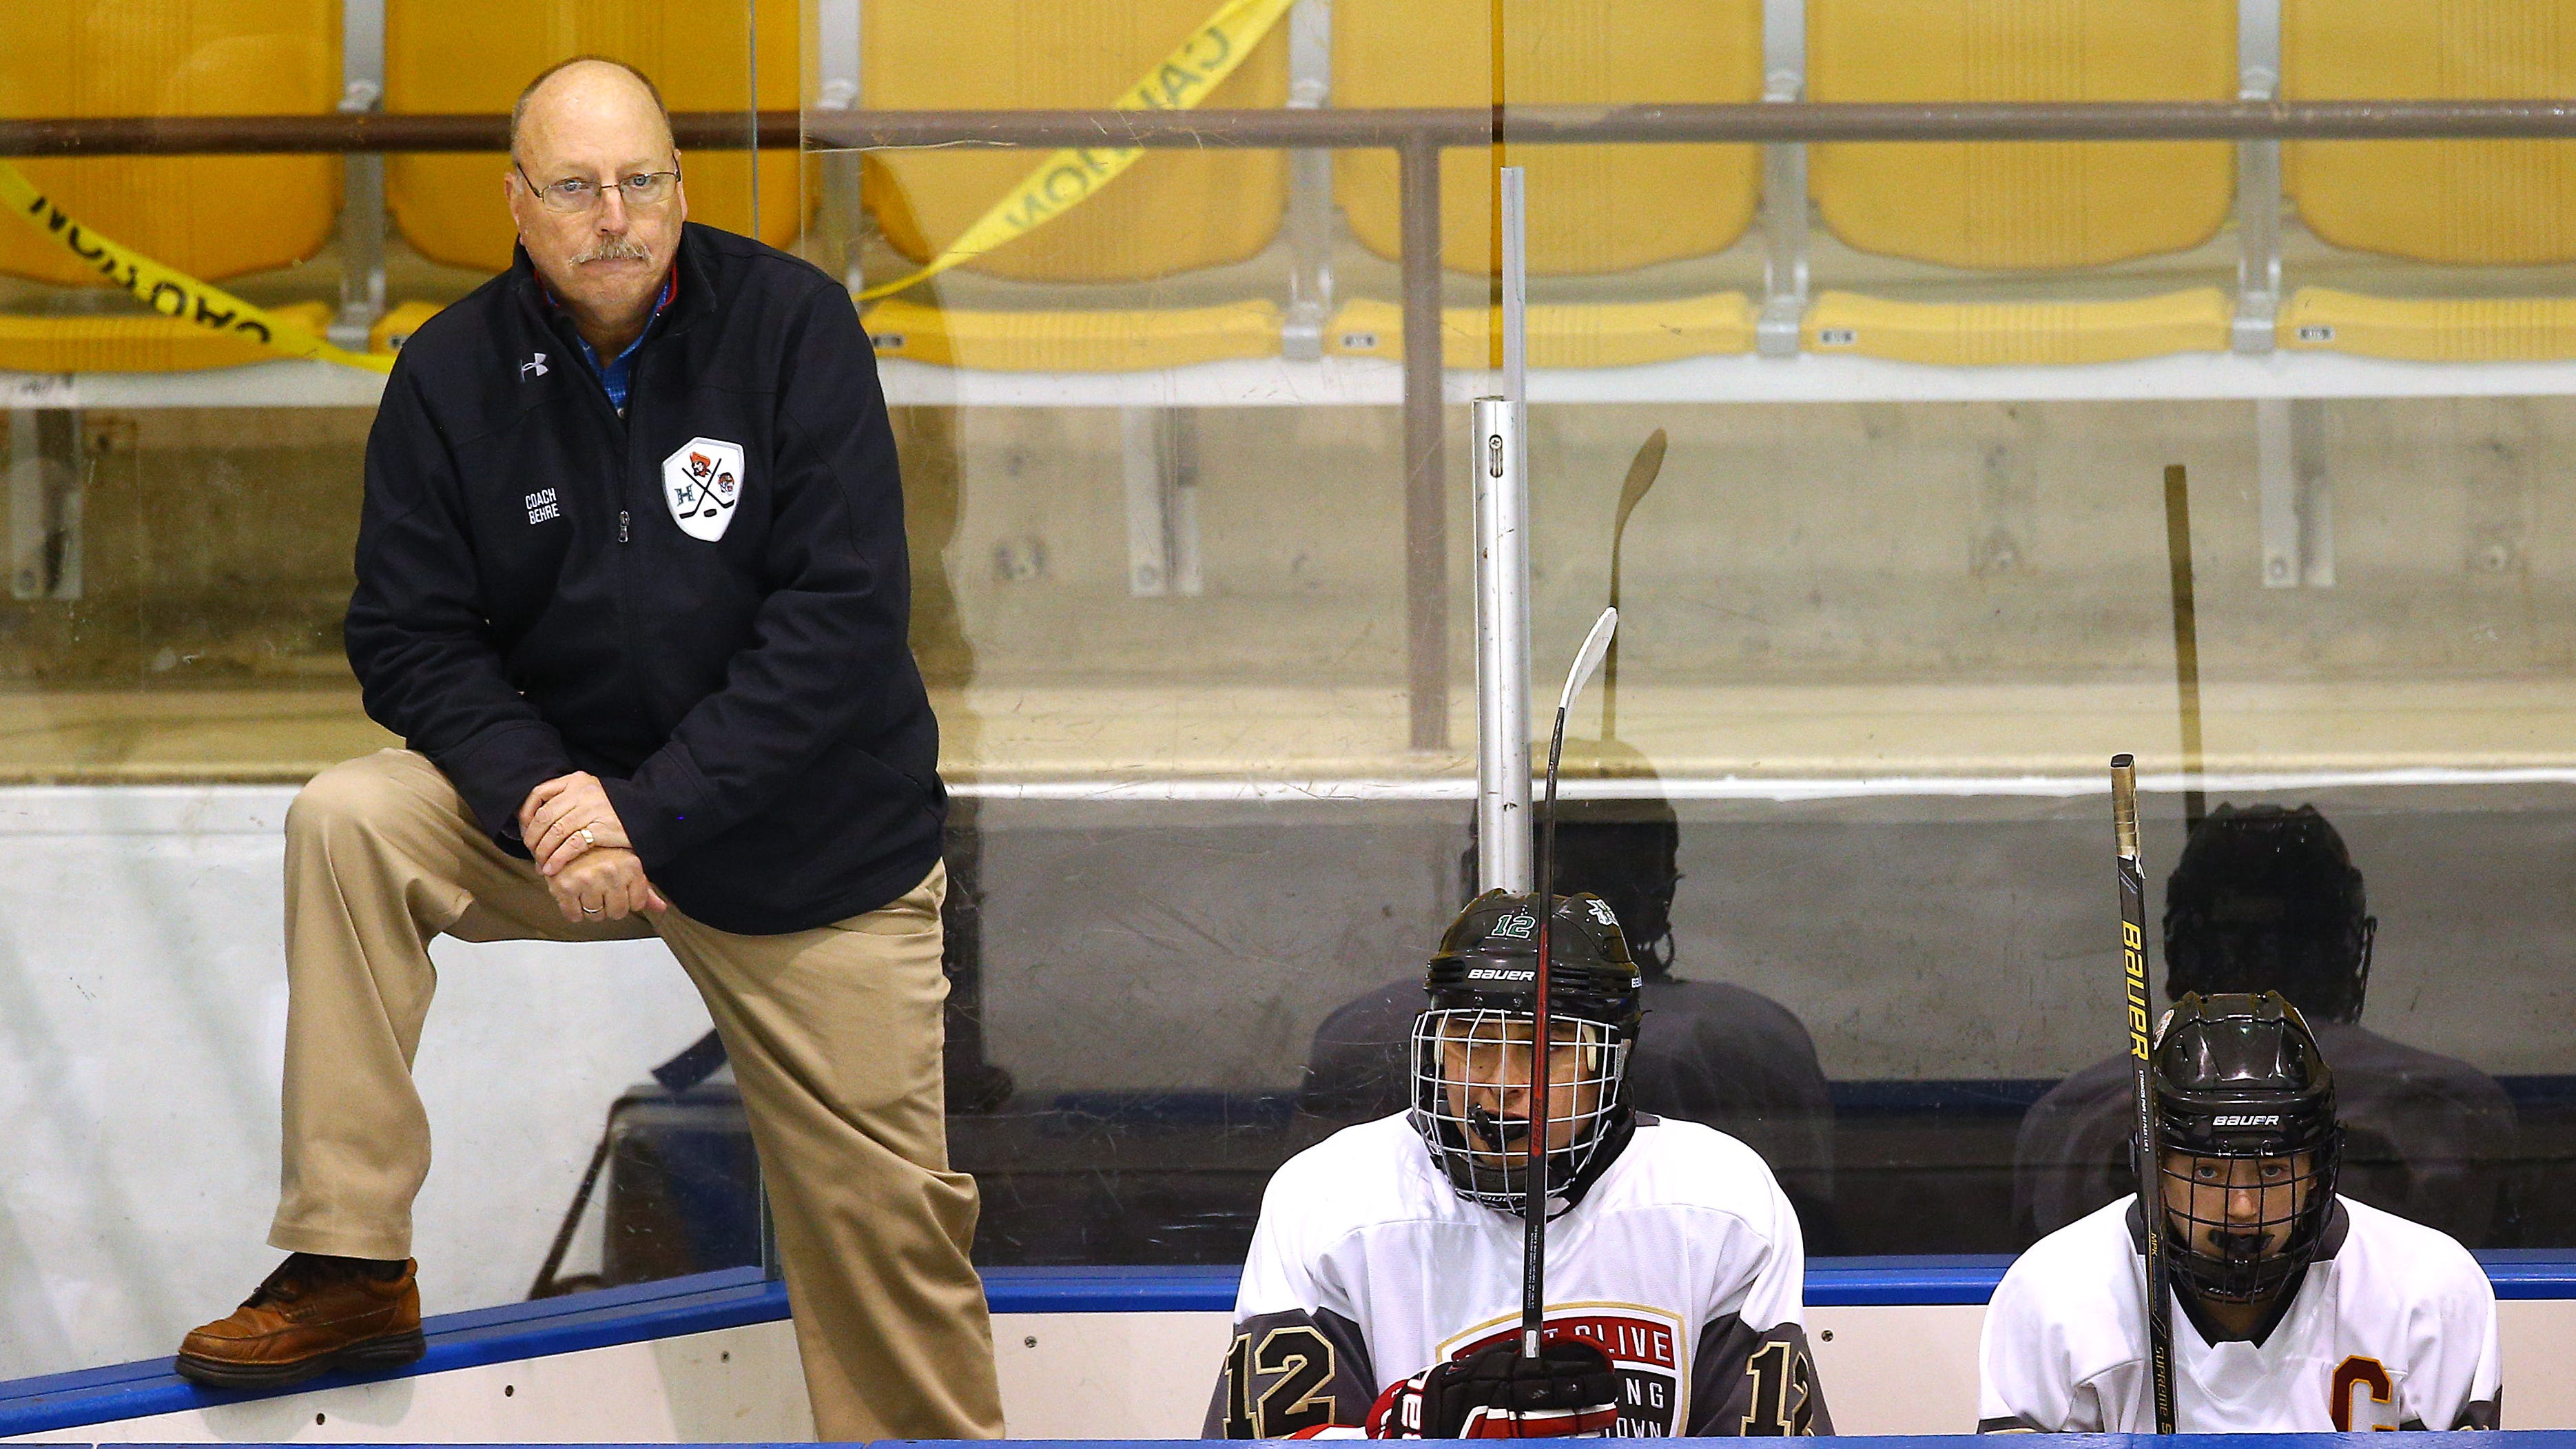 Mount Olive/Hopatcong/Hackettstown coach Mike Behre earns his 100th victory of his hockey coaching career, beating Newton/Lenape Valley at Mennen Sports Arena. November 29, 2018, Morris Twp, NJ